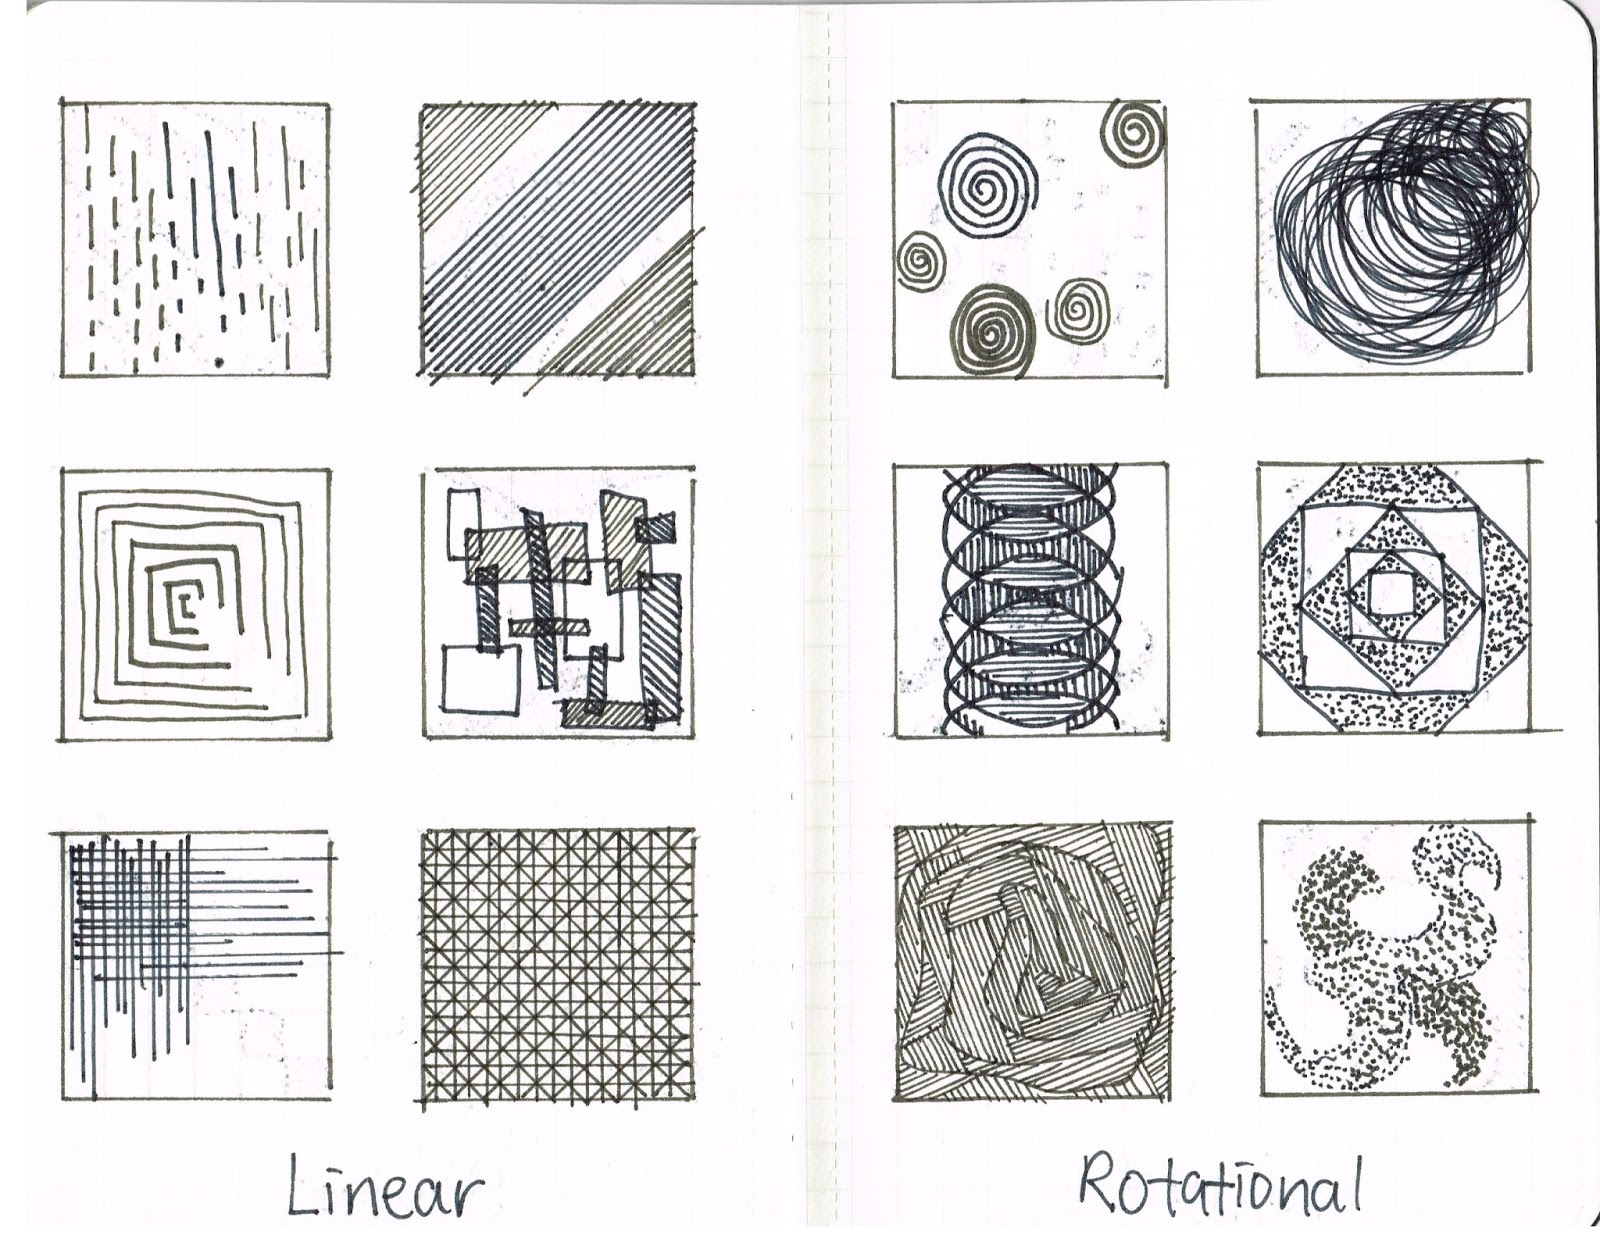 Texture Drawing Worksheets | Printable Worksheets and Activities for